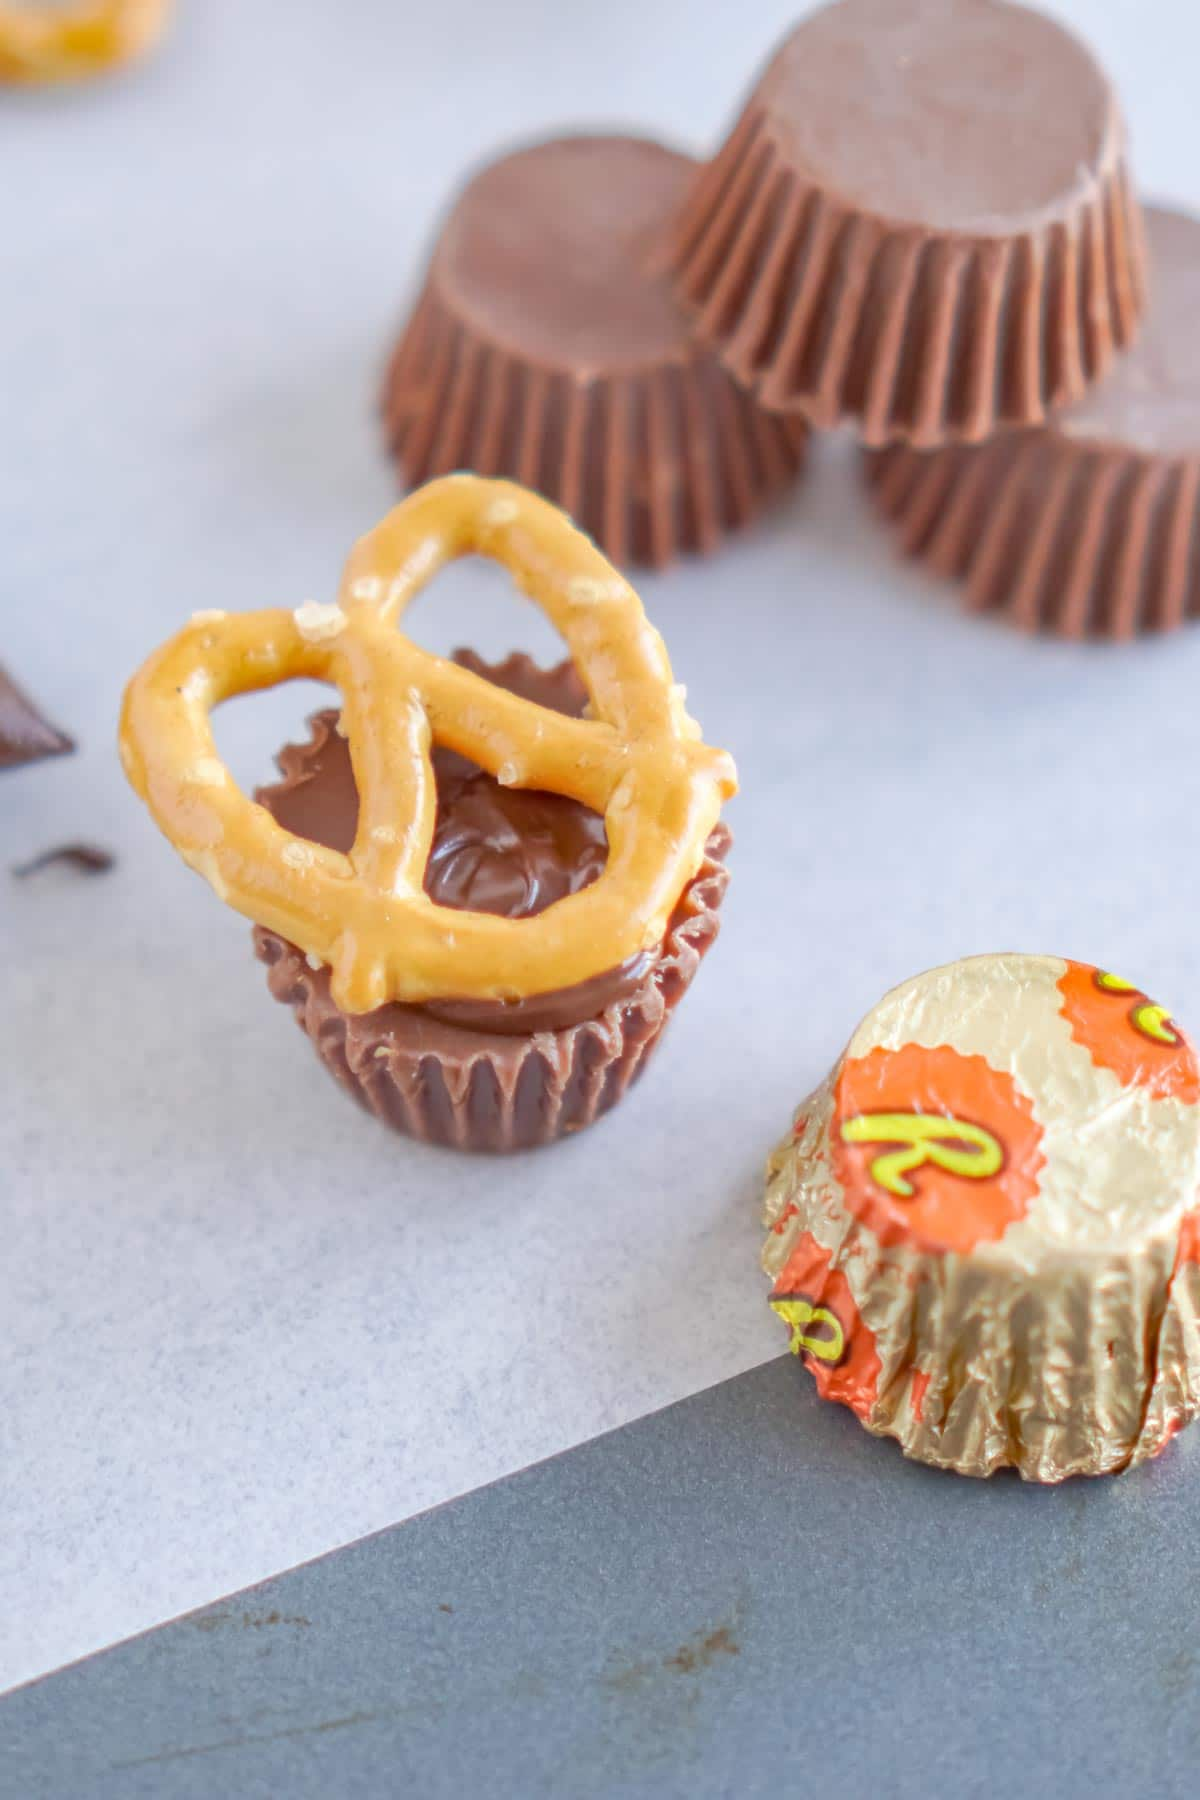 Pretzel on top of a Reese's Peanut Butter cup